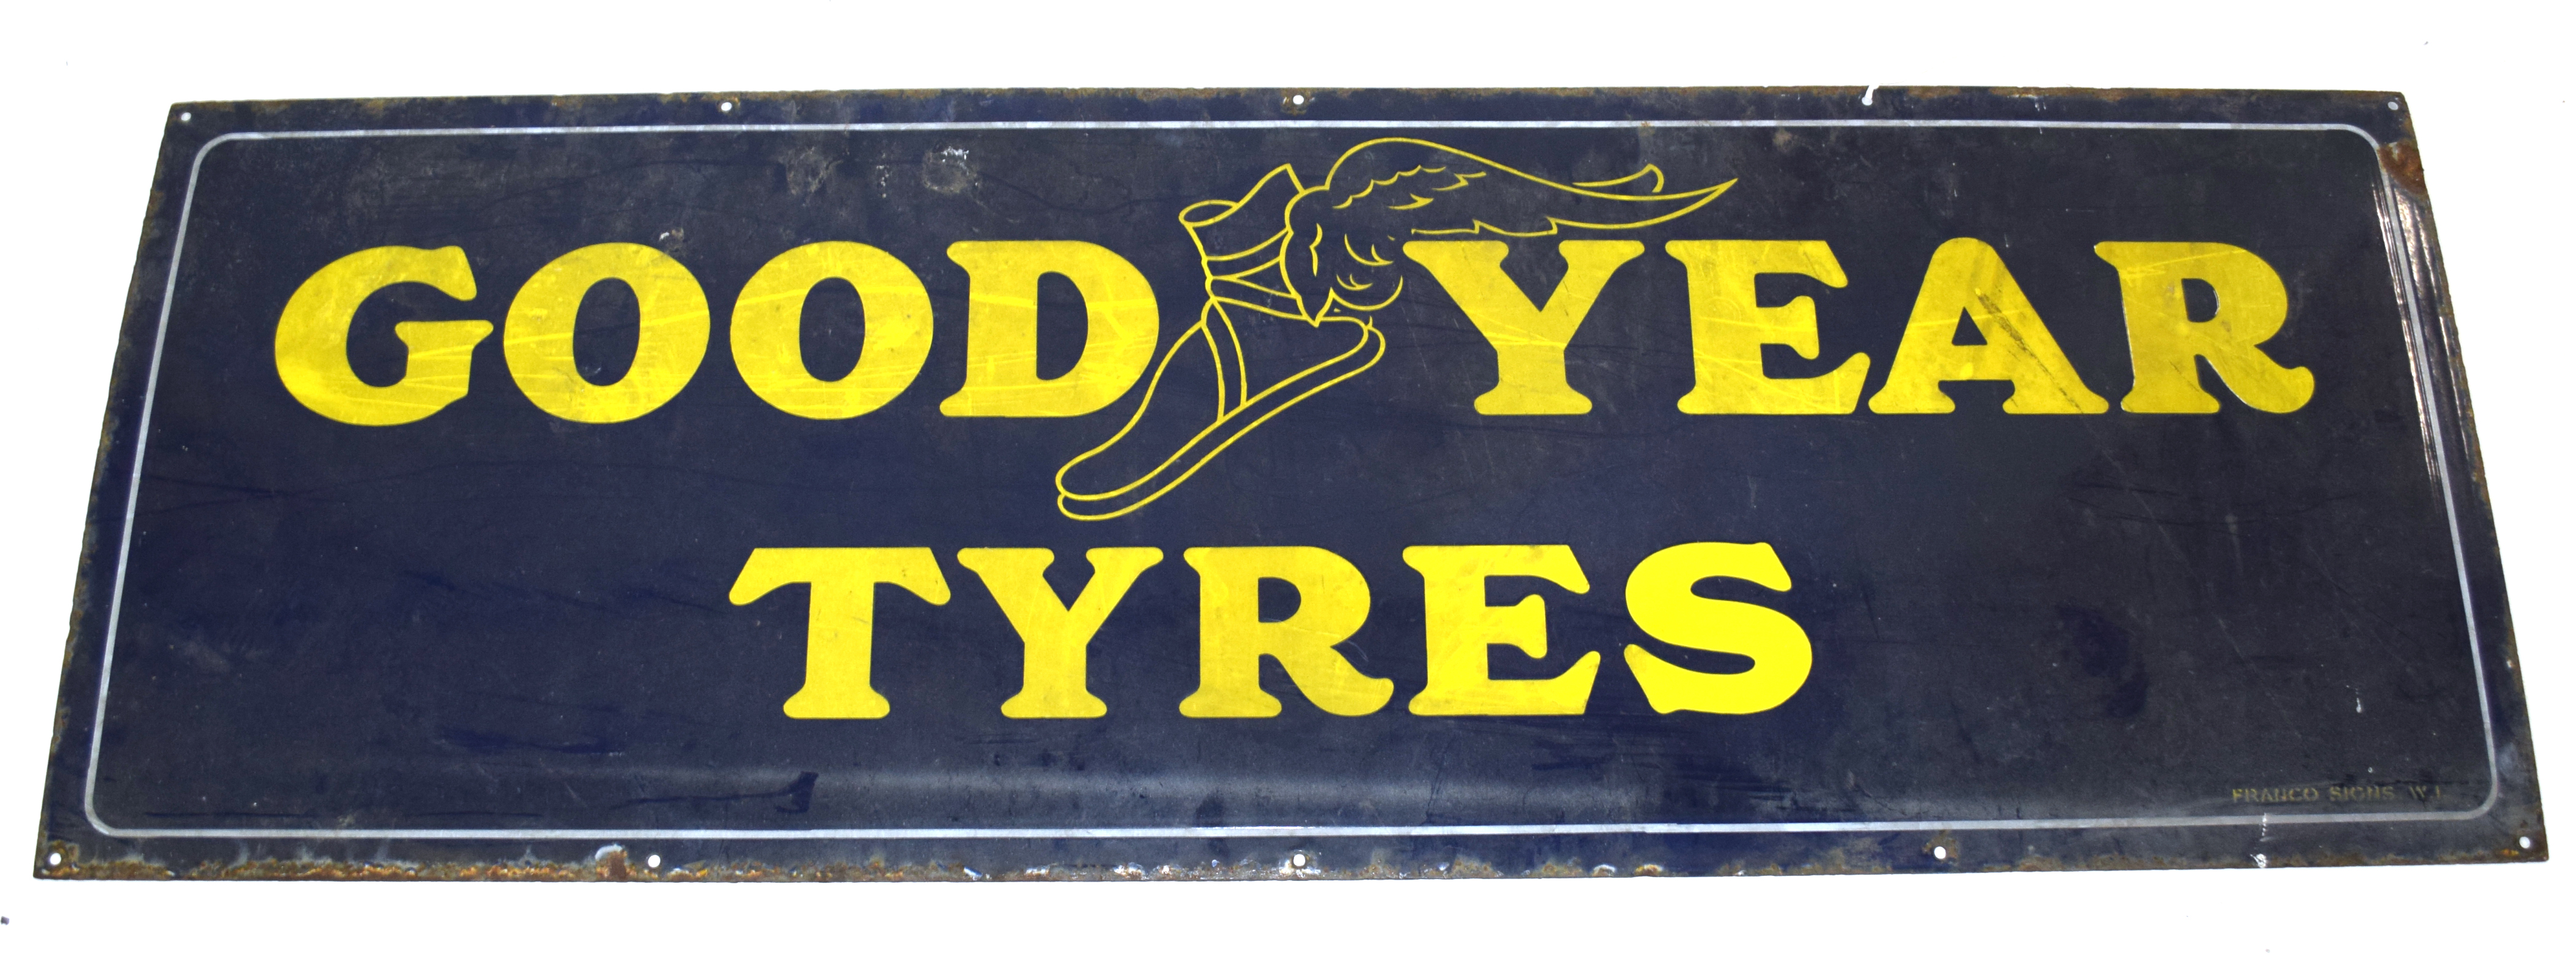 Vintage enamel advertising sign for Goodyear Tyres, yellow lettering on a blue background 153cm - Image 2 of 4